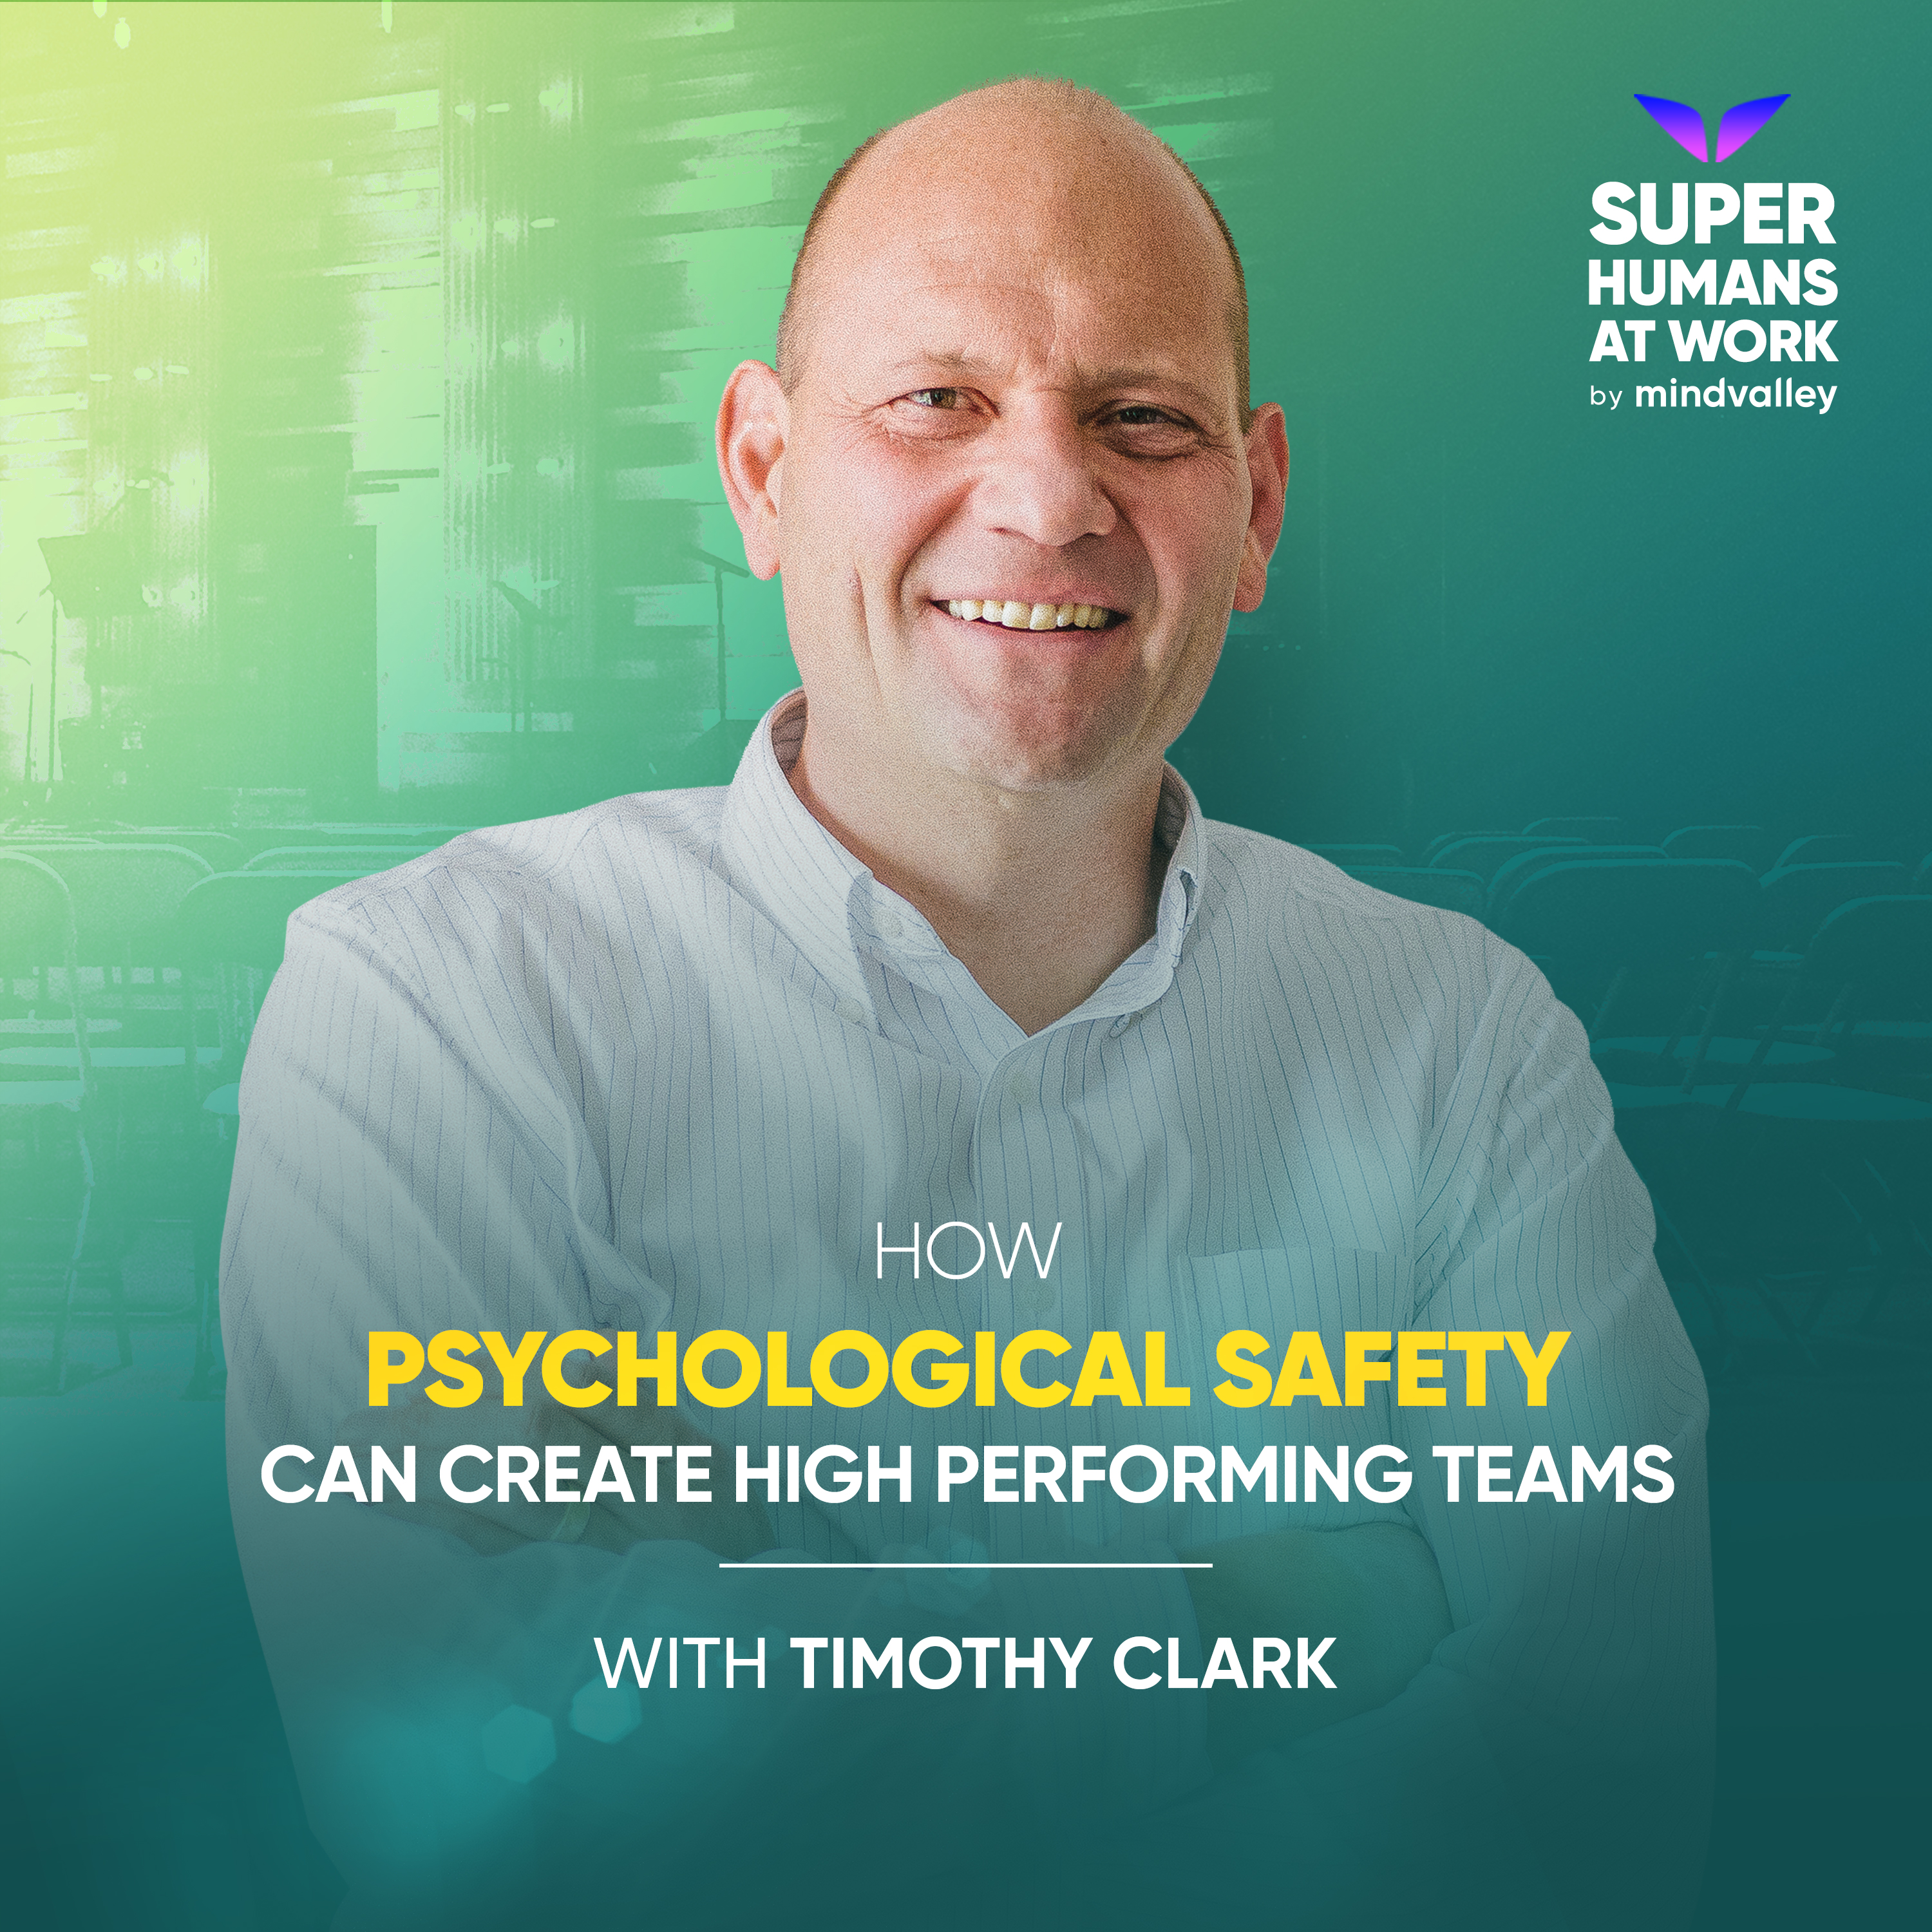 How Psychological Safety Can Create High Performing Teams - Timothy Clark